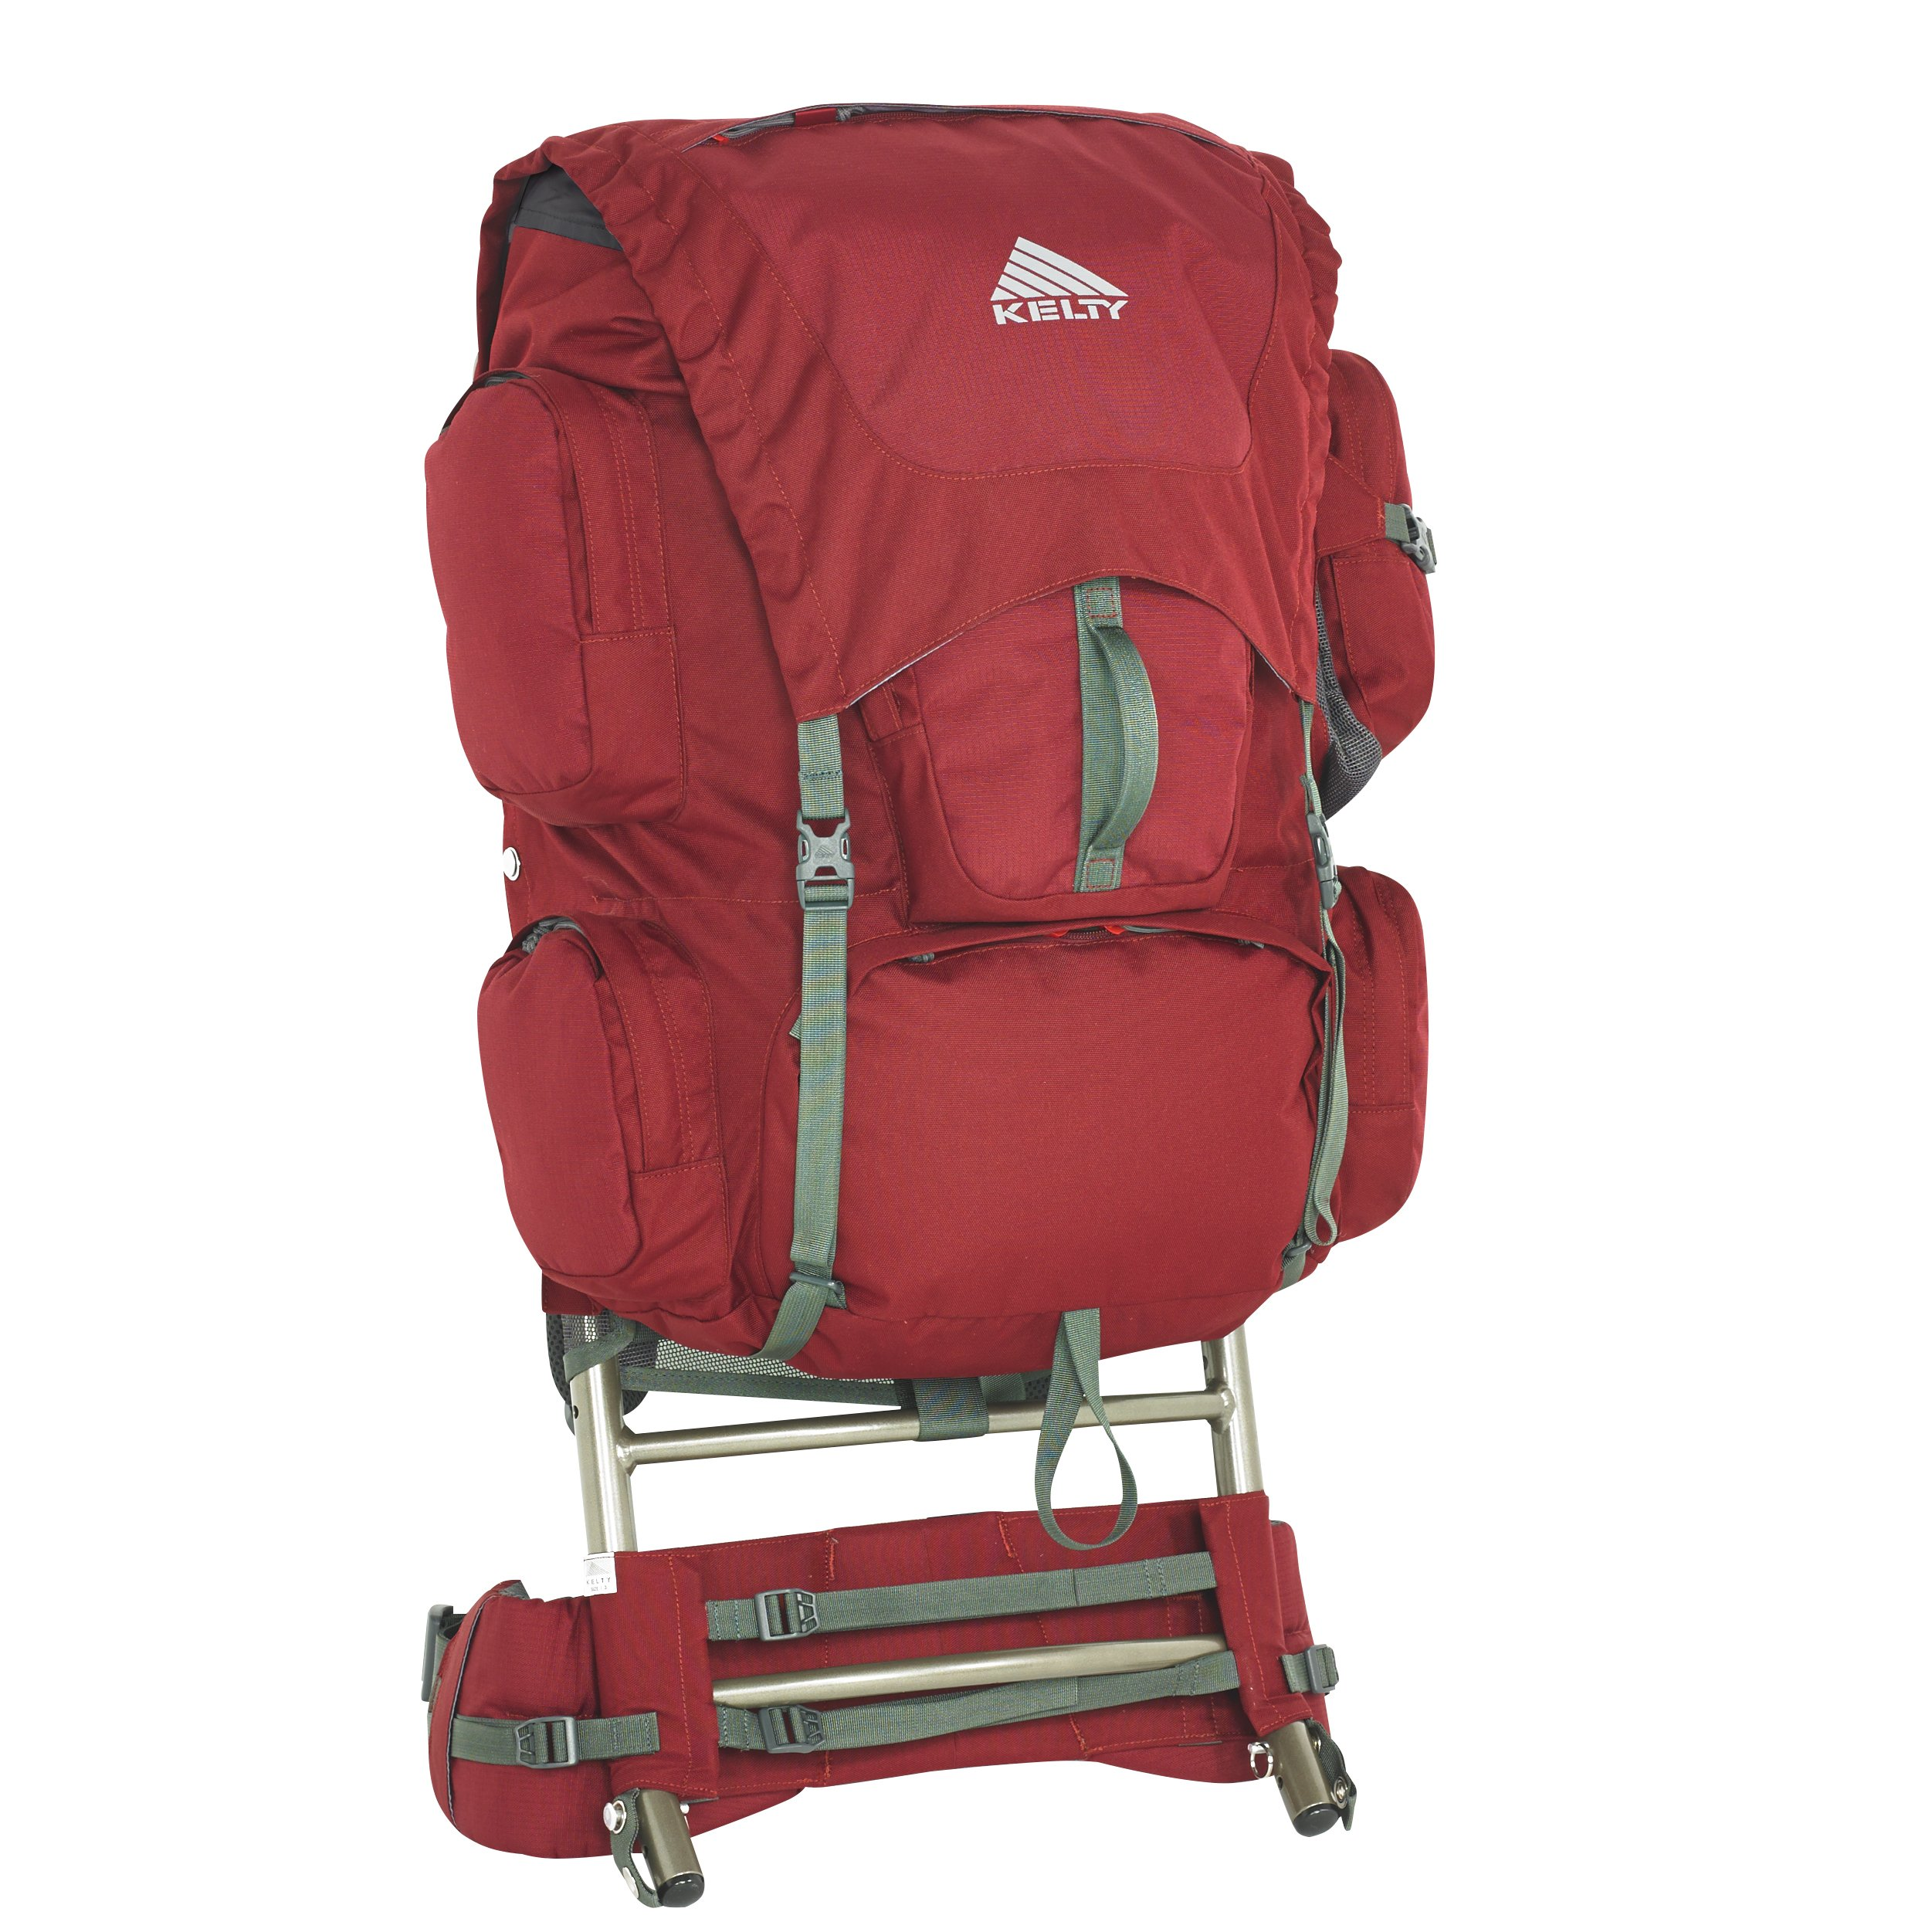 Kelty Trekker 65 Backpack, Garnet Red